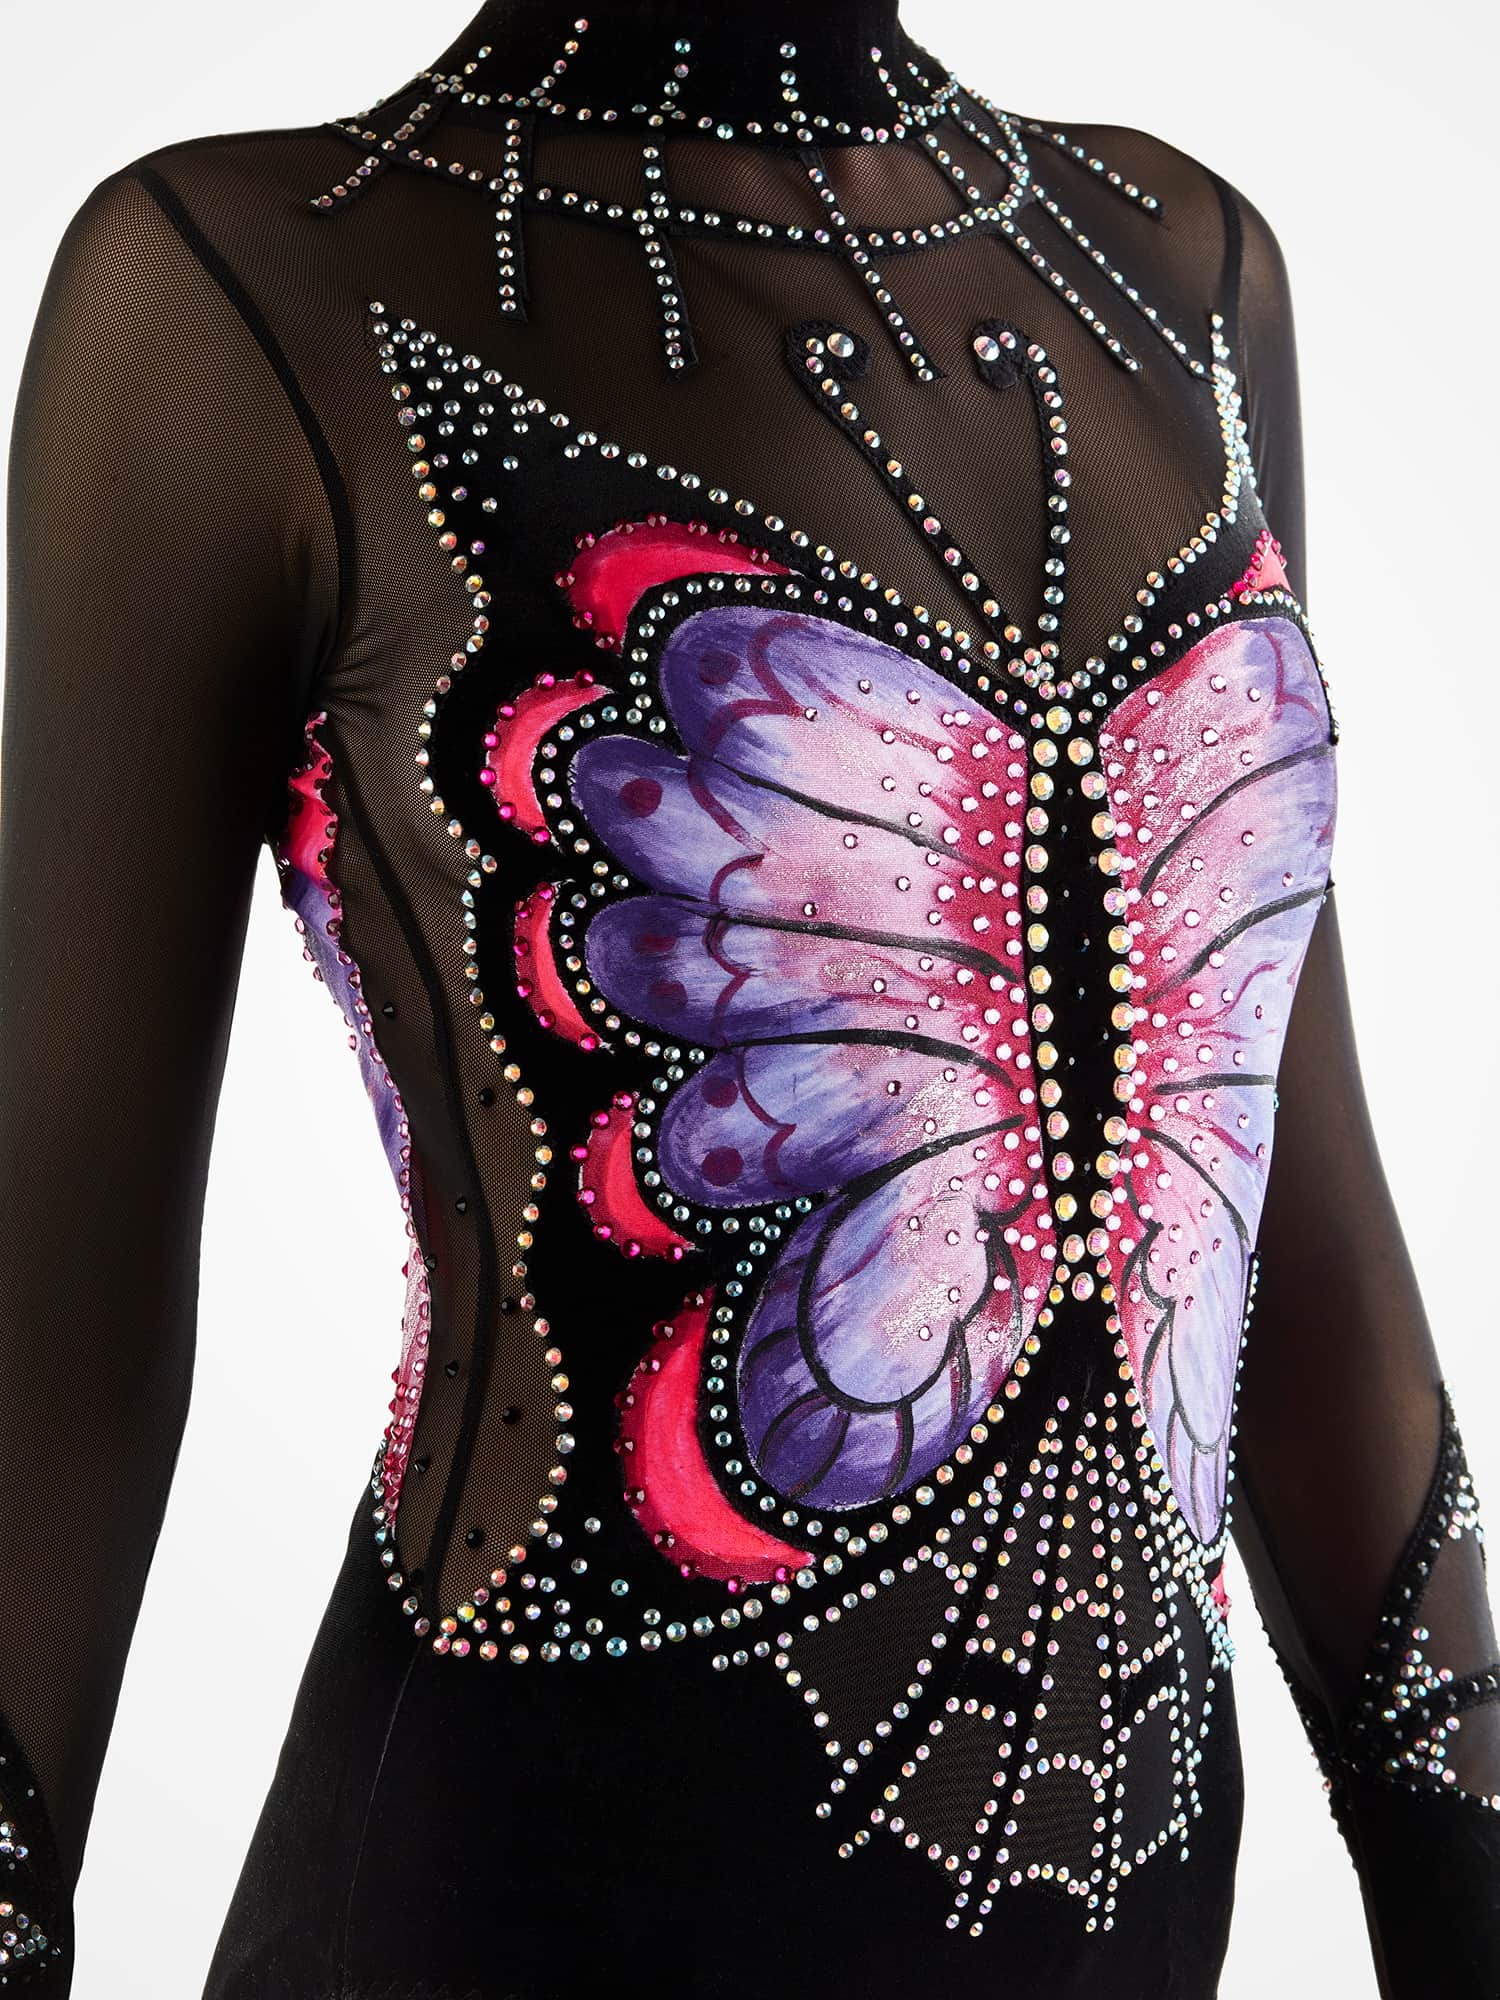 Acrobatic Gymnastics Leotard 219 with painted Butterfly made in Black, purple, hot mesh, black mesh with two sleeves, collar & skirtless